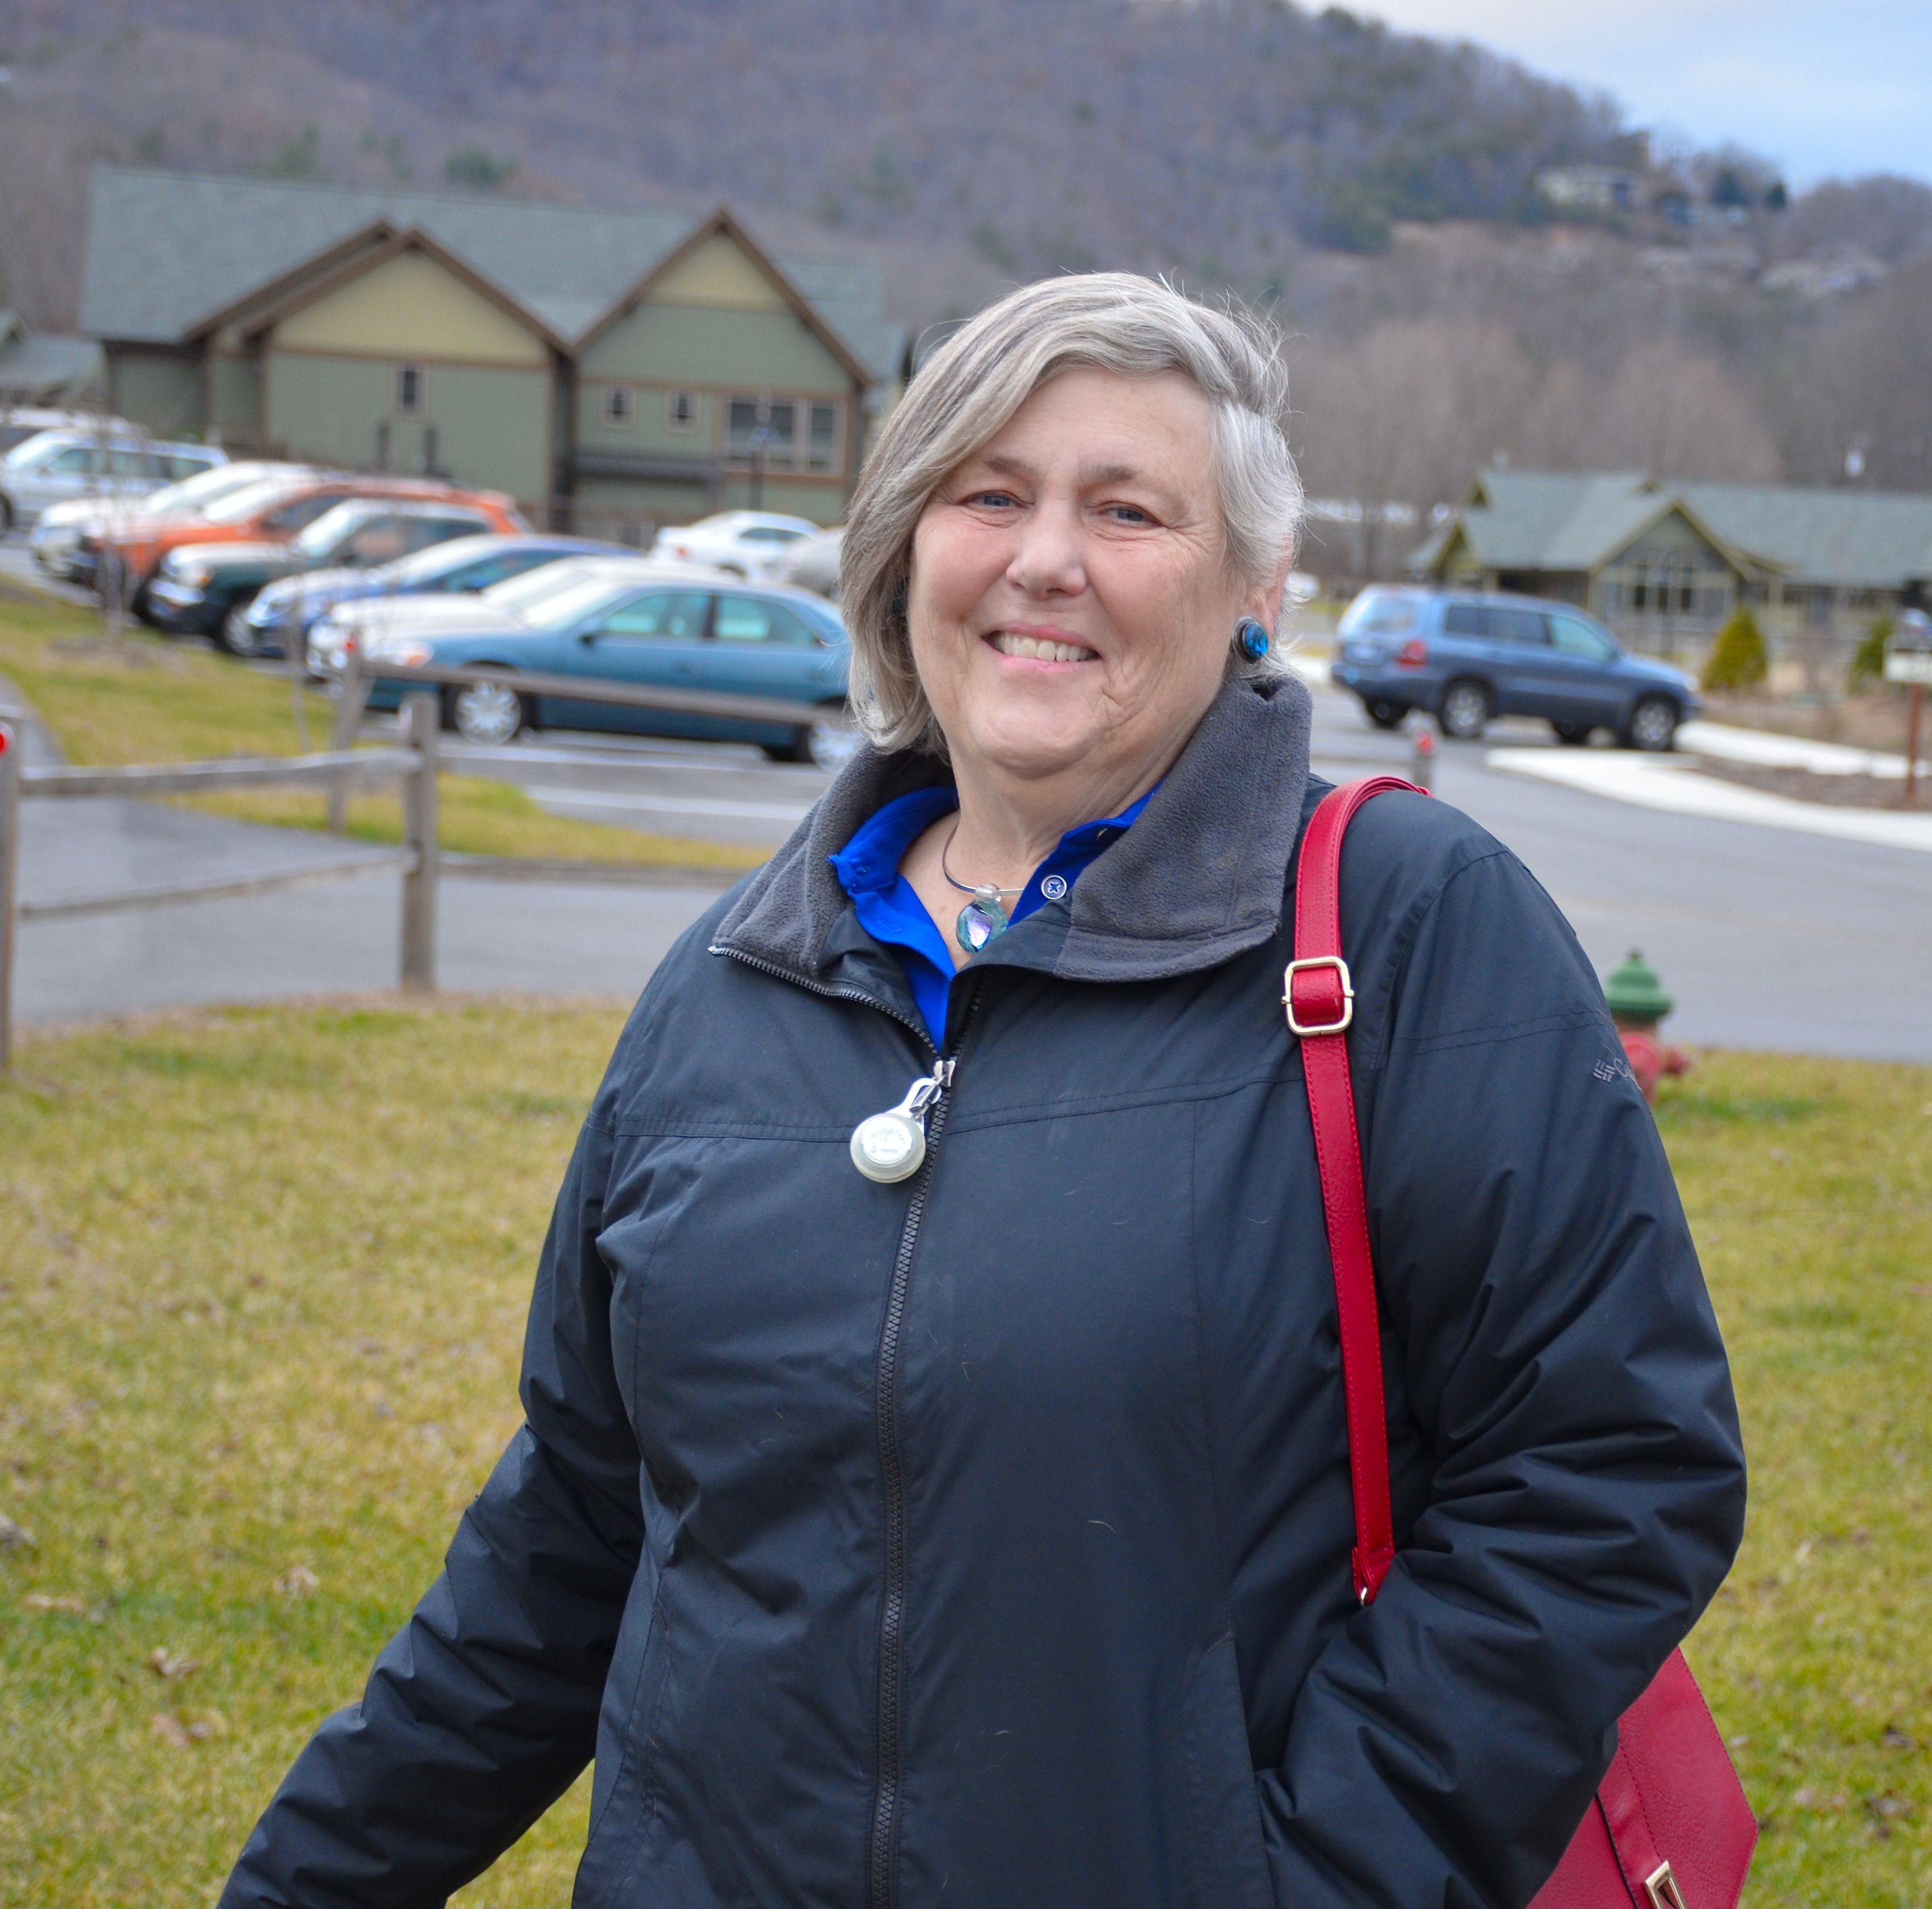 A life of adventure brings Eileen Shea to the Swannanoa Valley